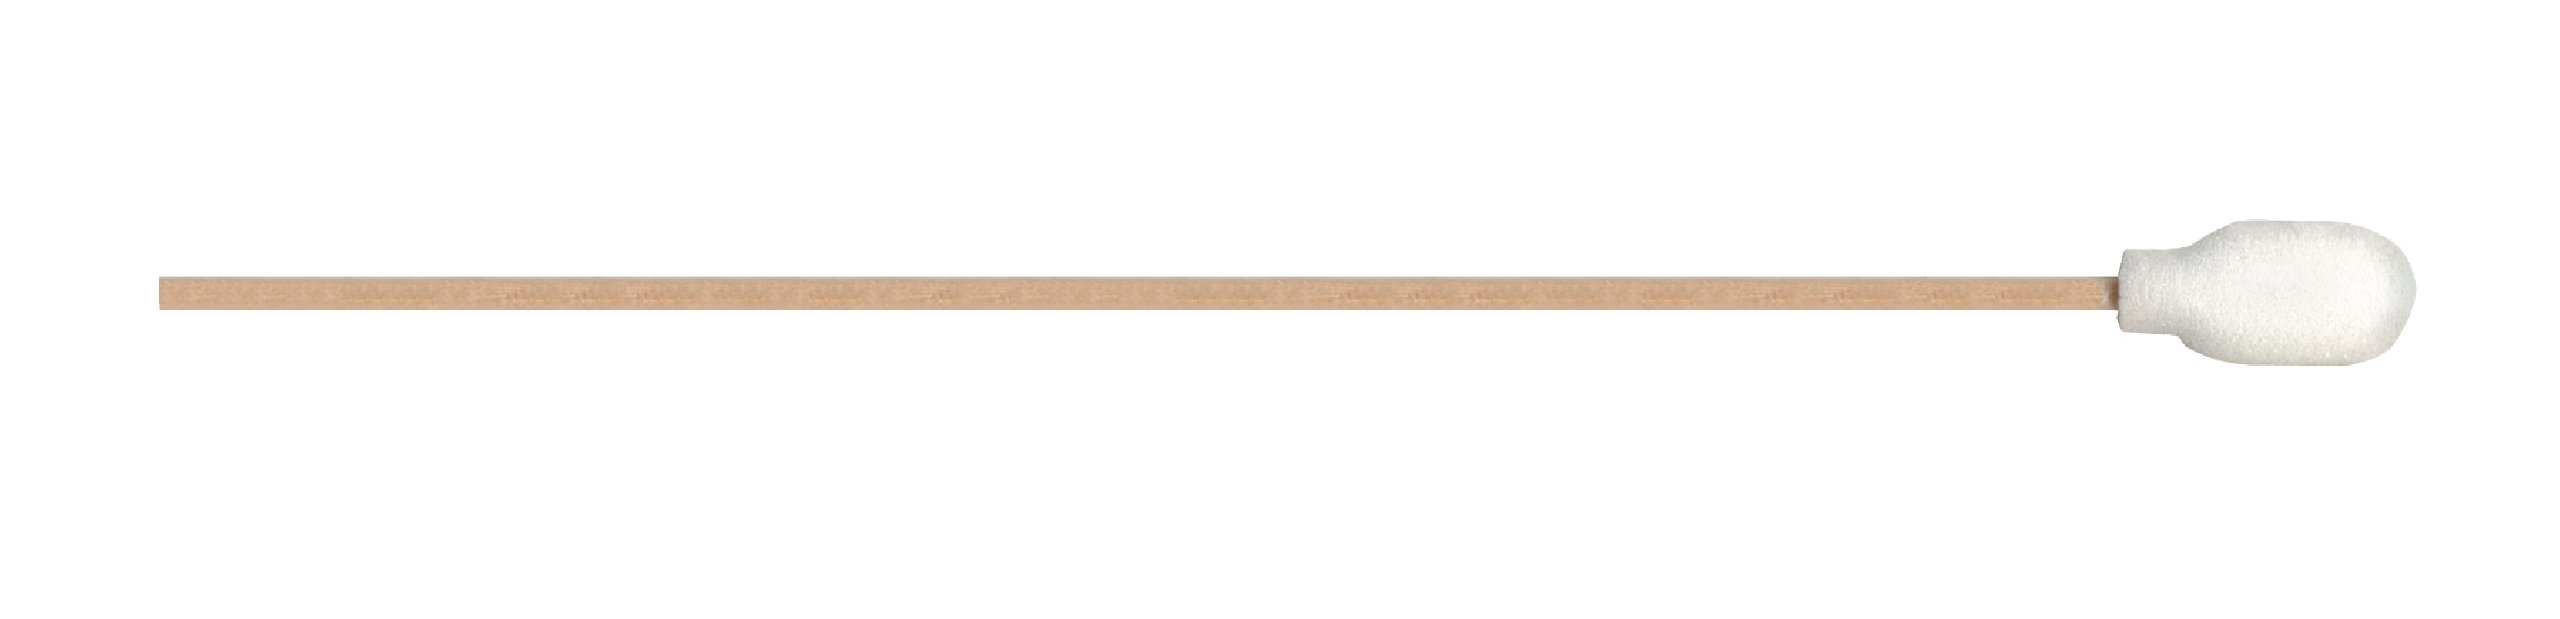 MG Chemicals Urethane Foam Over Cotton Precision Cleaning Swab, 100 PPI Porosity, 6'' Length